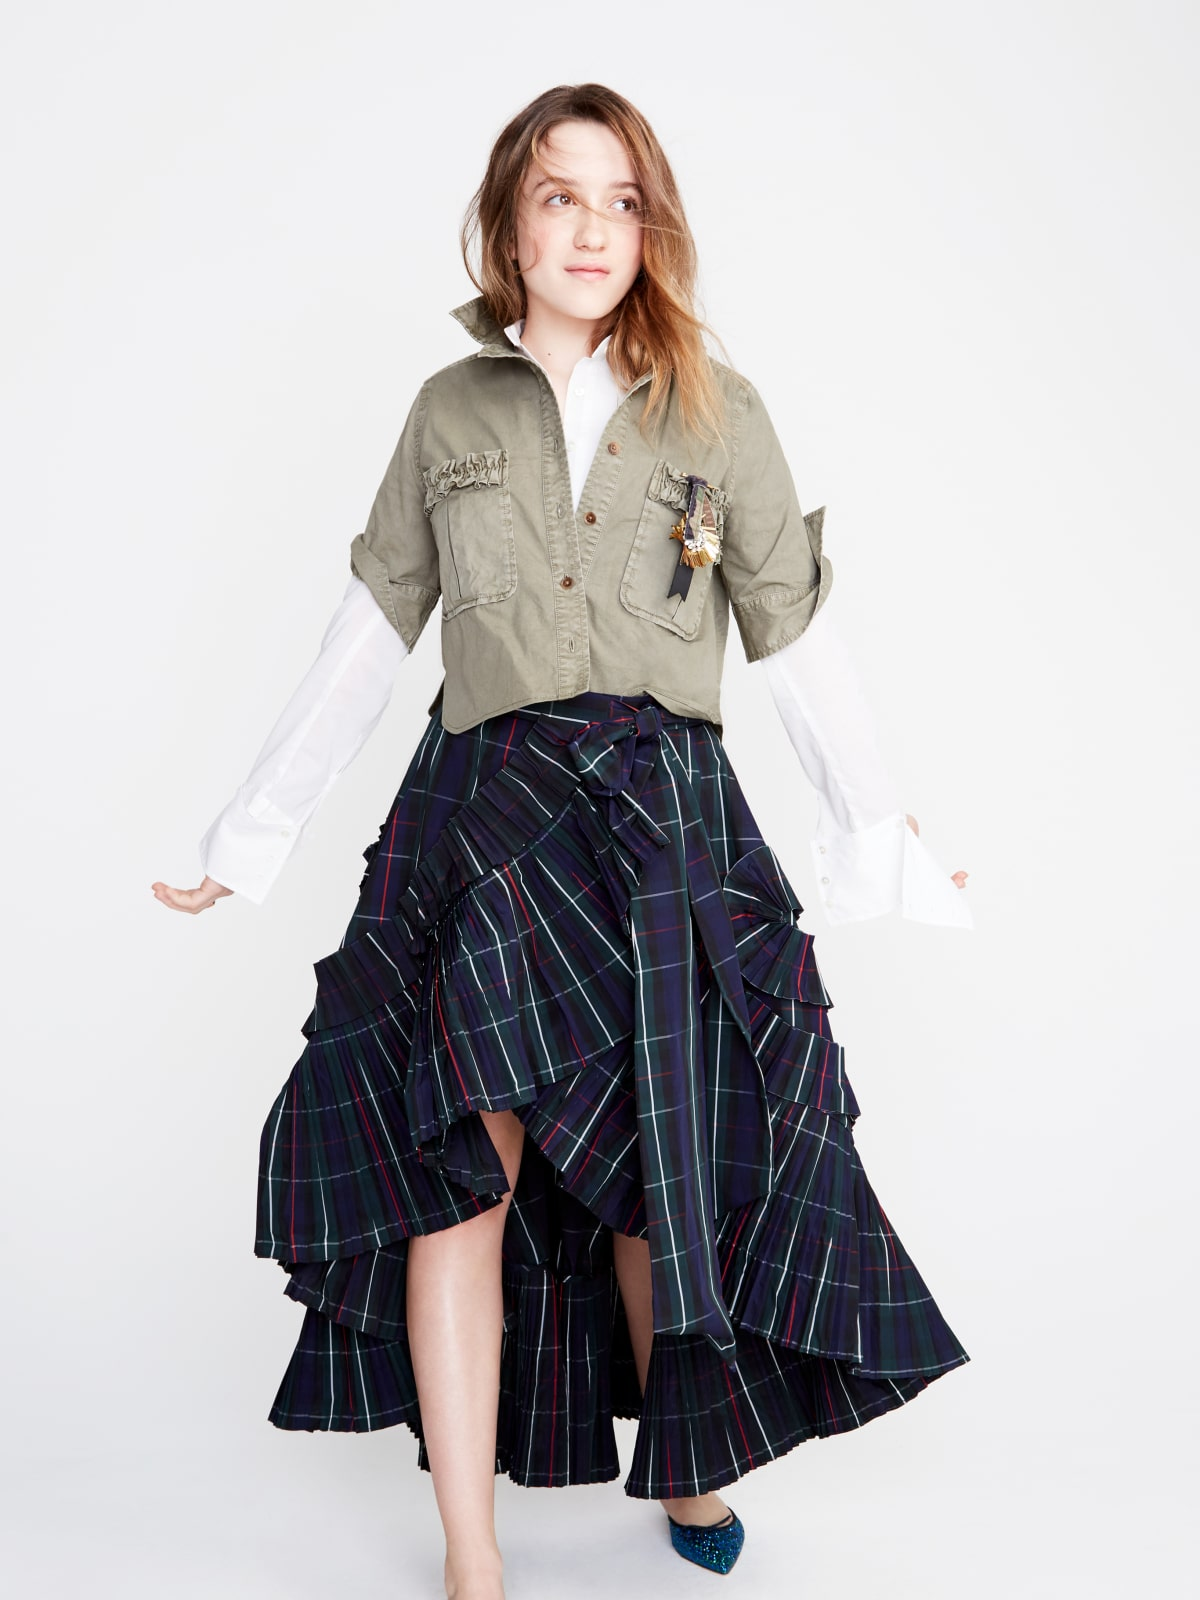 Mathilda Gianopoulos, daughter of Molly Ringwald, models J.Crew fall 2017